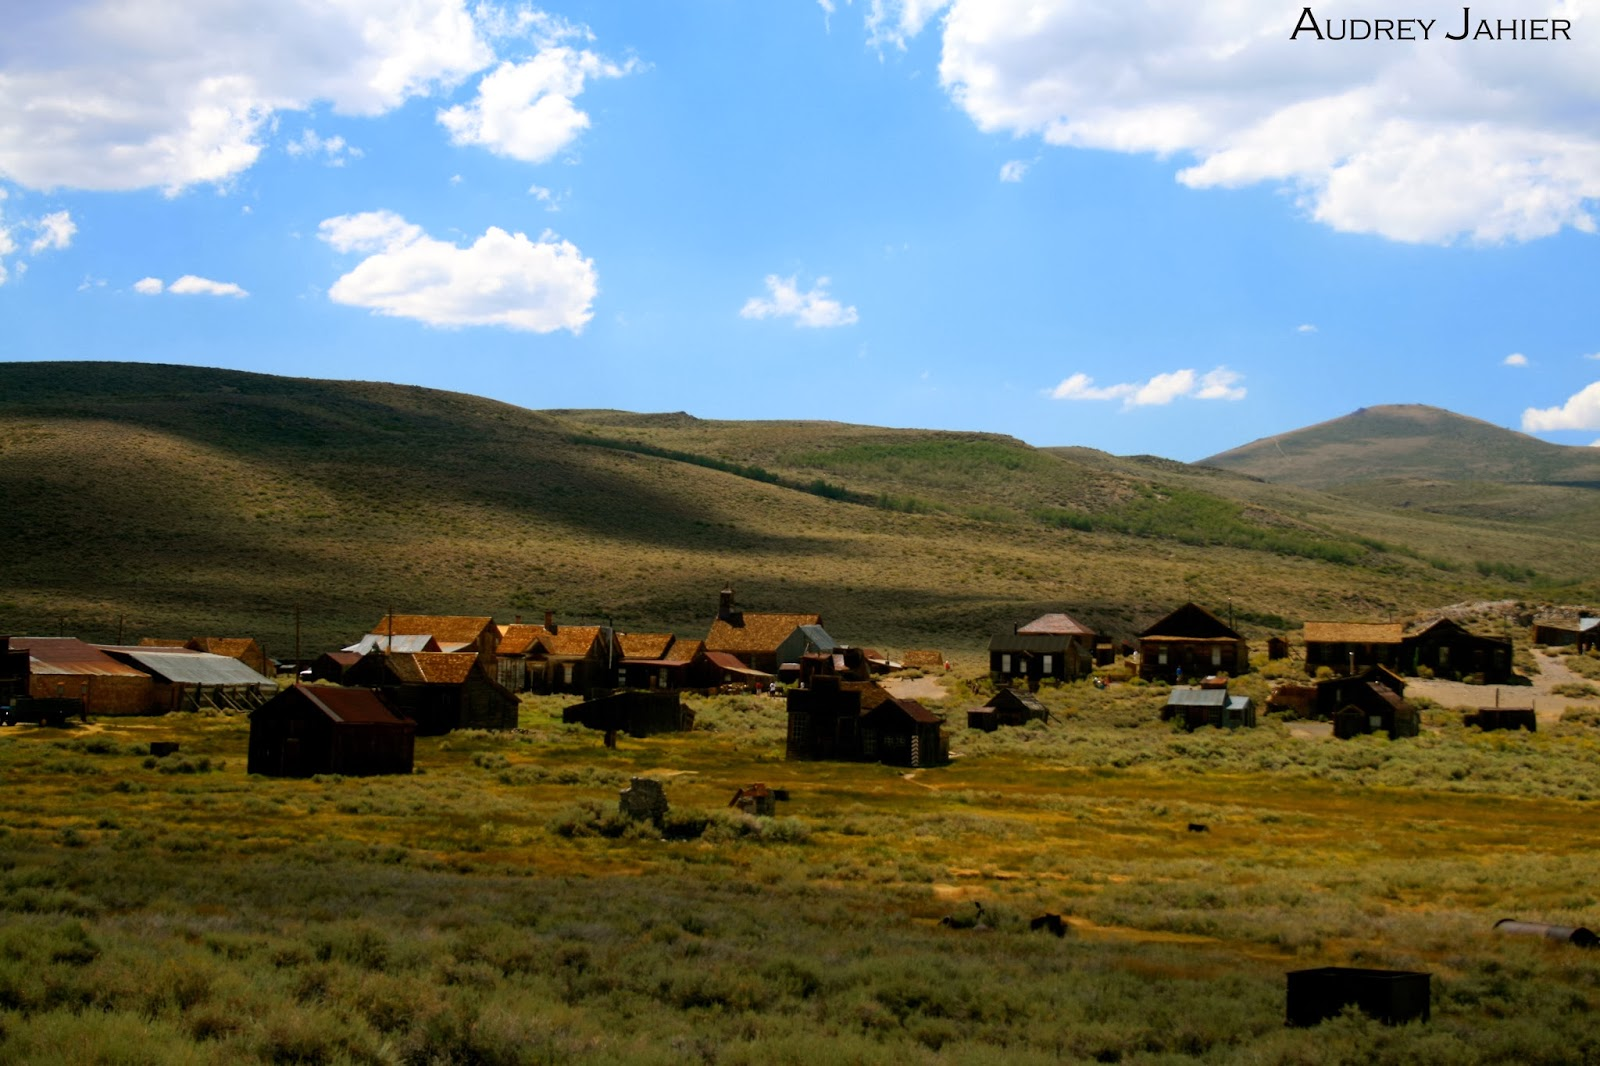 bodie-ghost-town-california-road-trip-USA